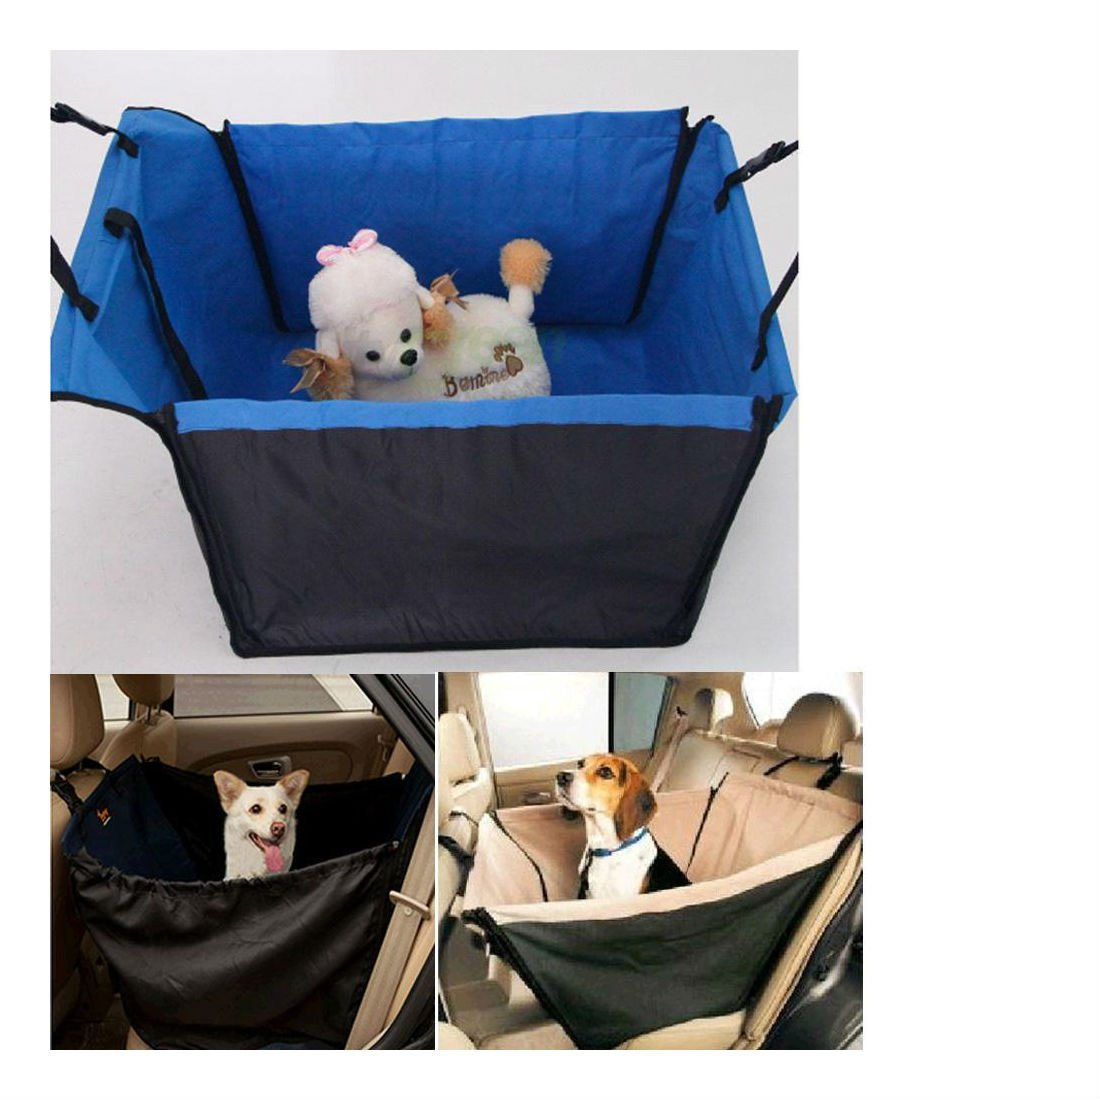 New Carrier Car Seat Cover Fodable Waterproof Pet Dog Safety Travel Hammock bluee Pet Supplies